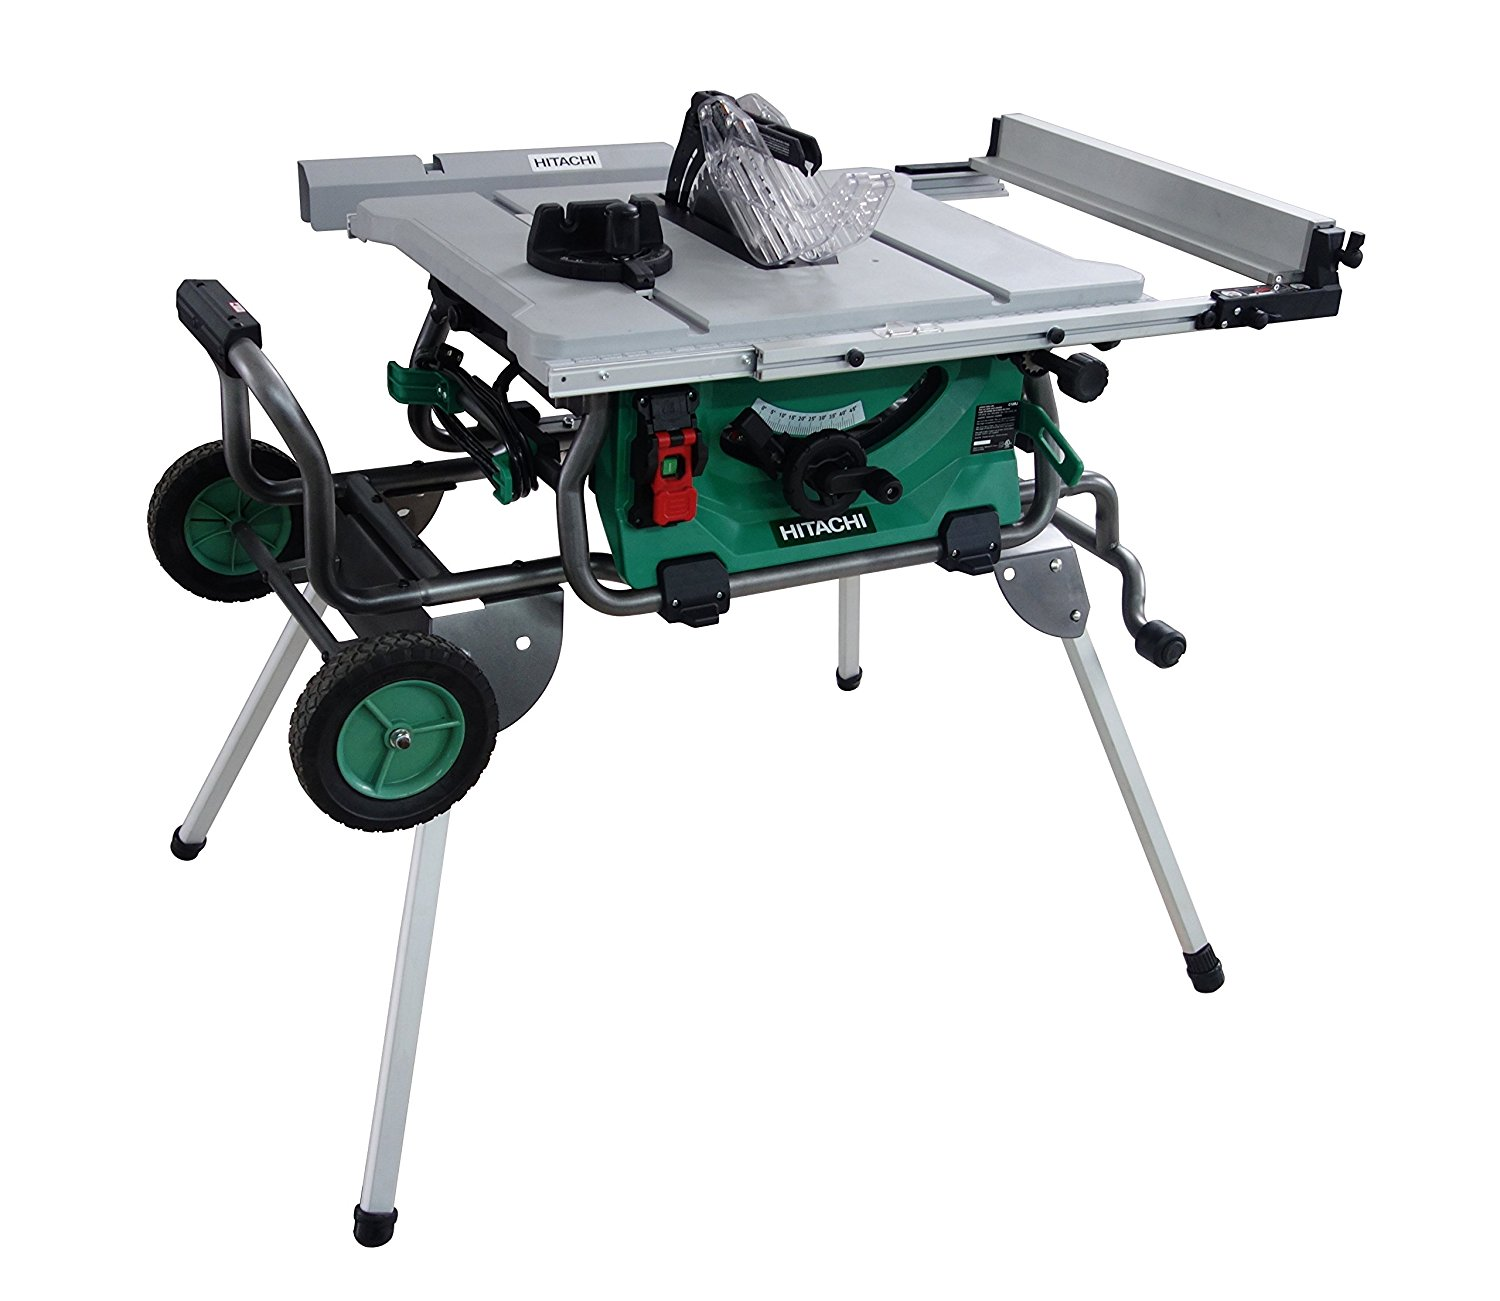 Hitachi C10rj 10 Quot 15 Amp Table Saw With 35 Quot Rip Capacity